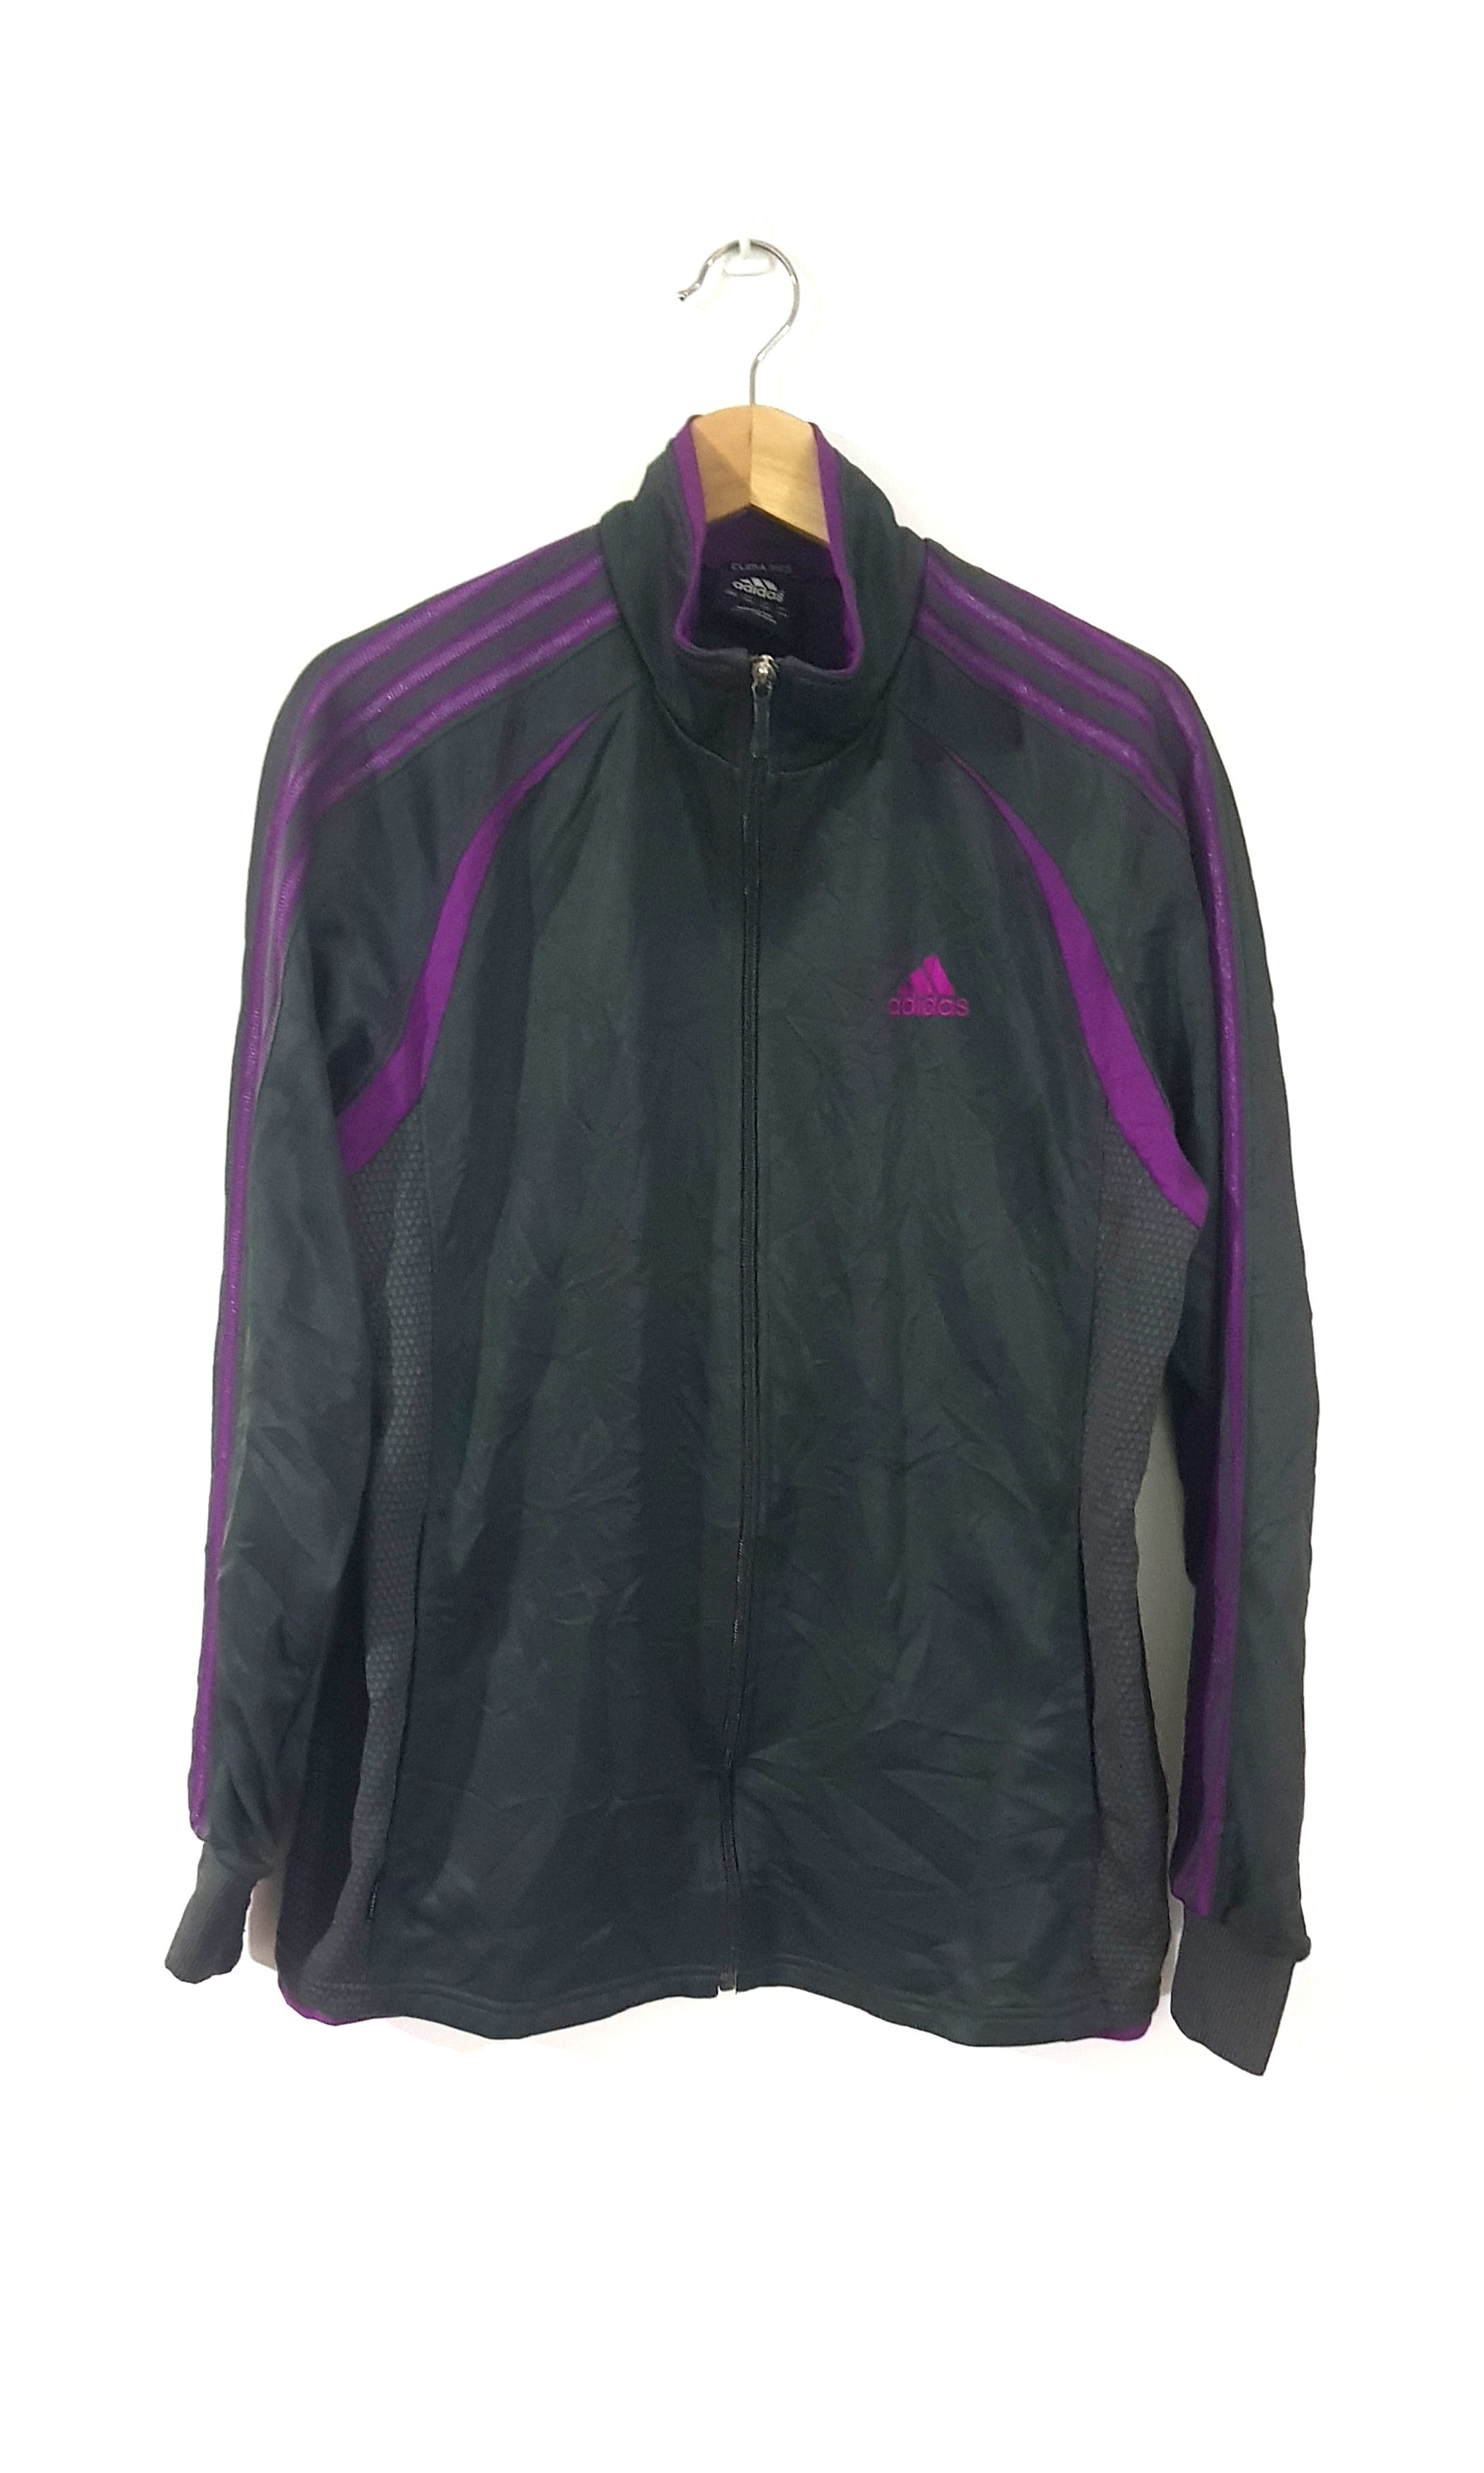 Vintage Adidas Track Jacket Men S Fashion Clothes Outerwear On